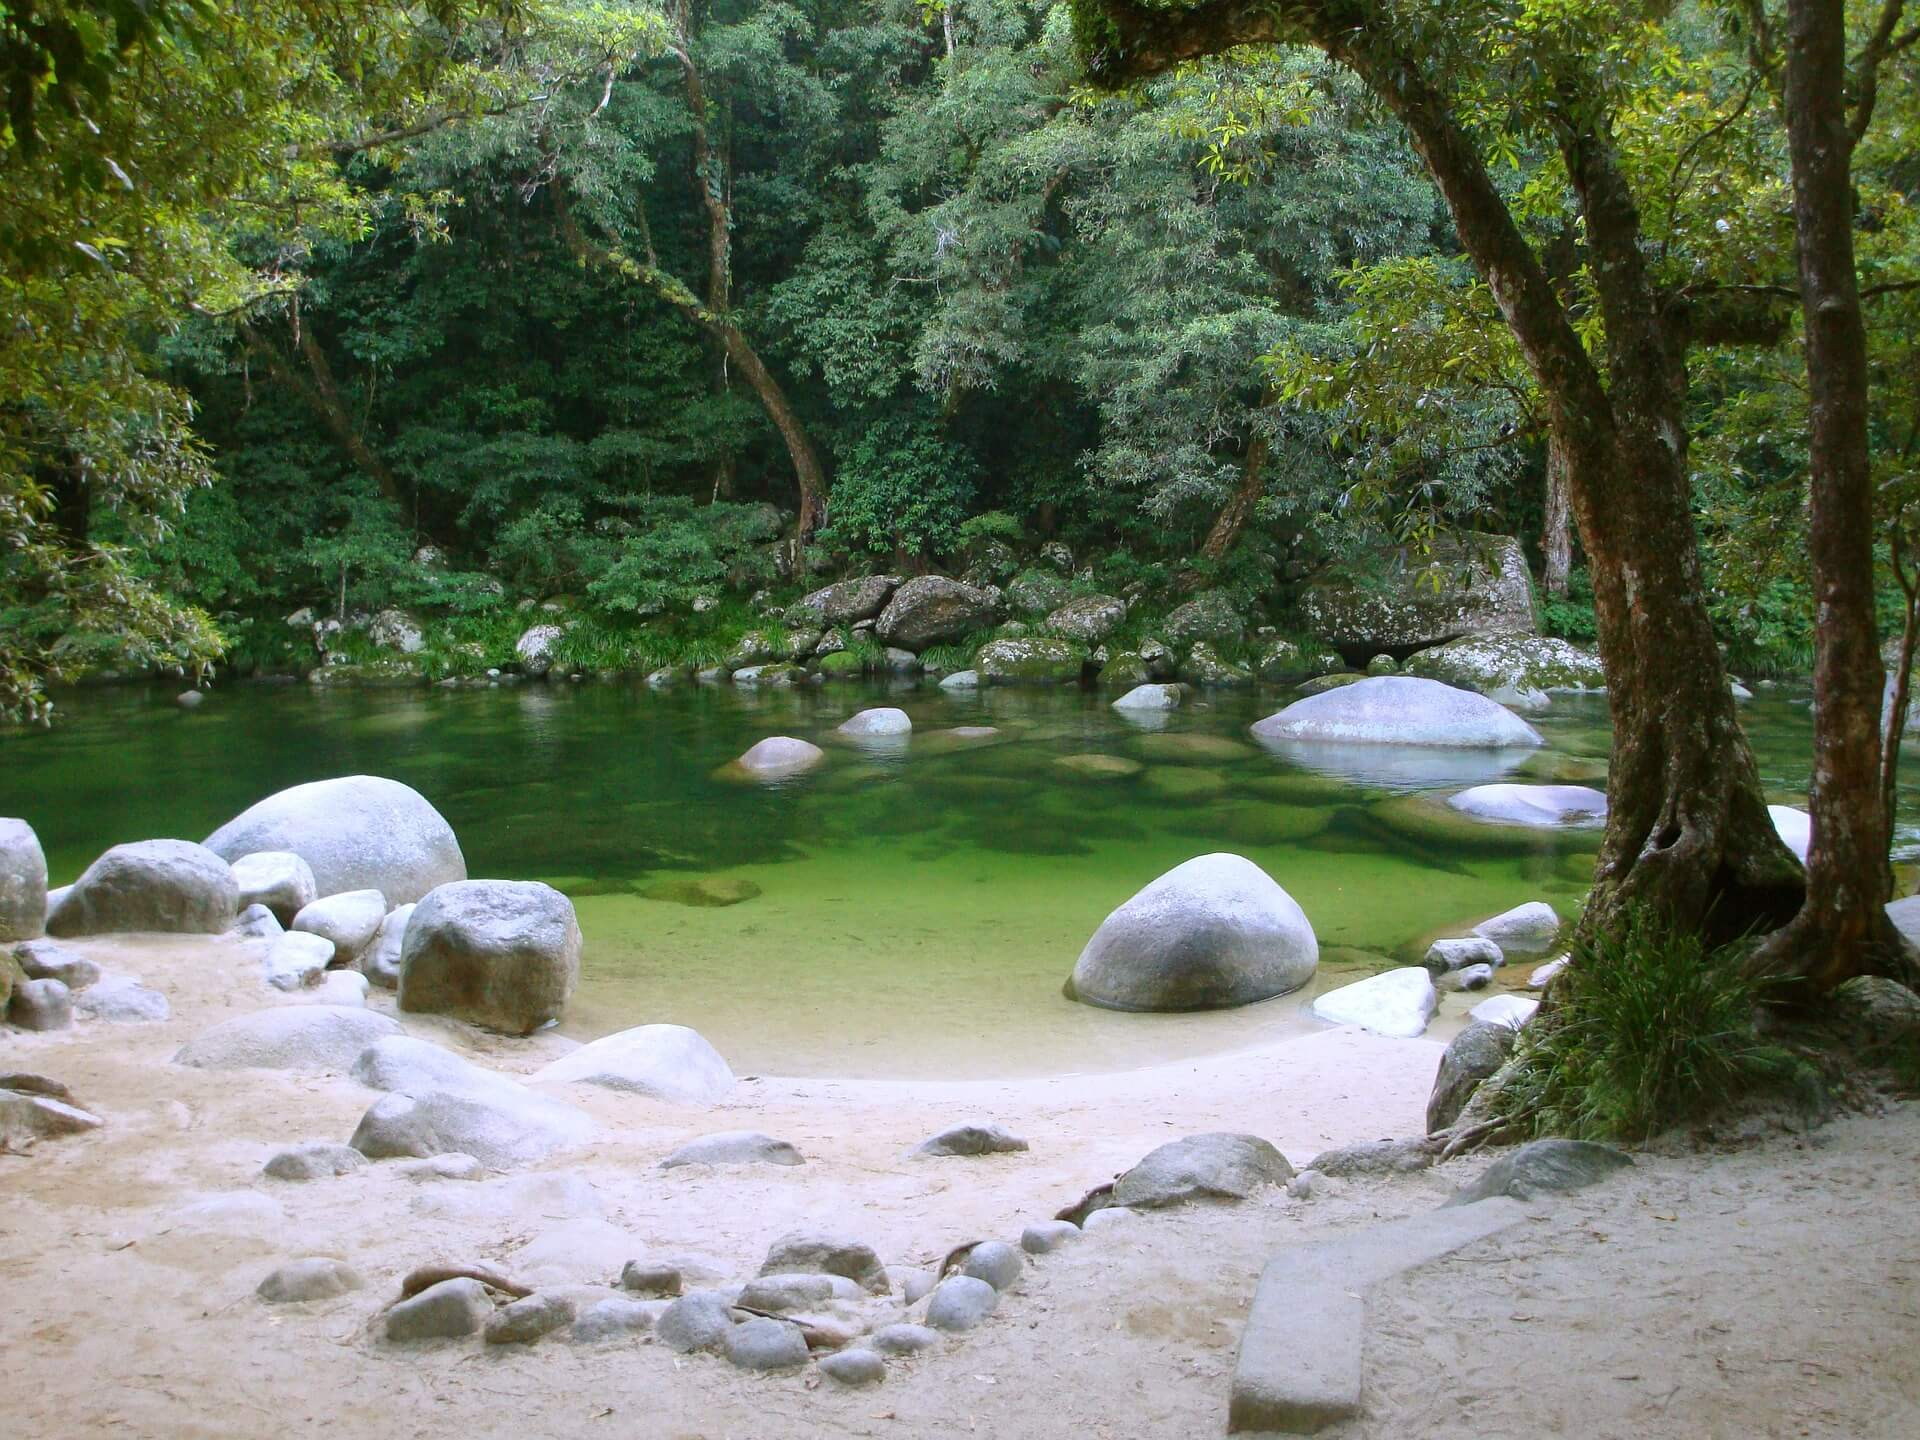 Mossman Gorge, Daintree Rainforest - one of Queensland's best national parks